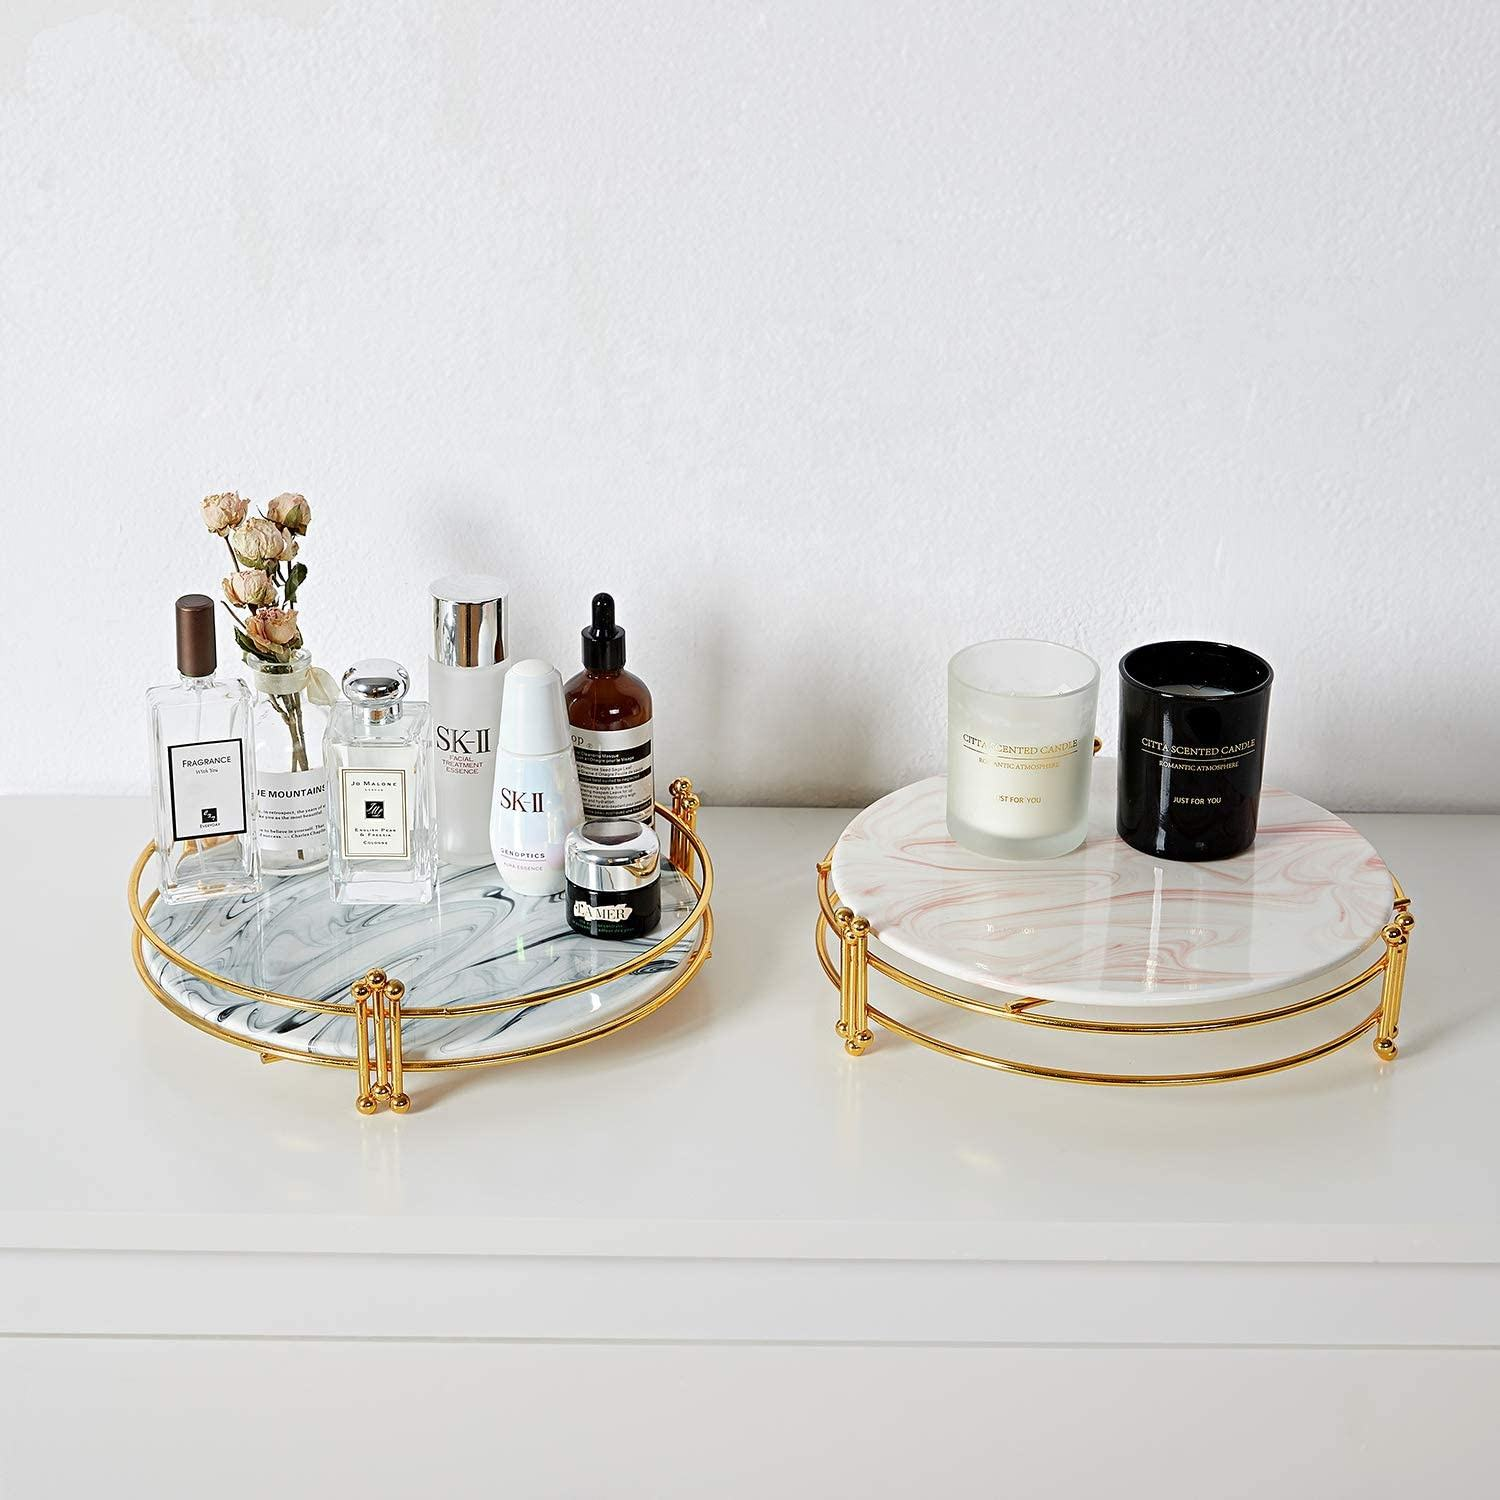 Round white Marble Ceramic Decorative Tray with Handmade Gold Stand acrylic Perfume Tray for Dresser, Coffee Table, Ottoman